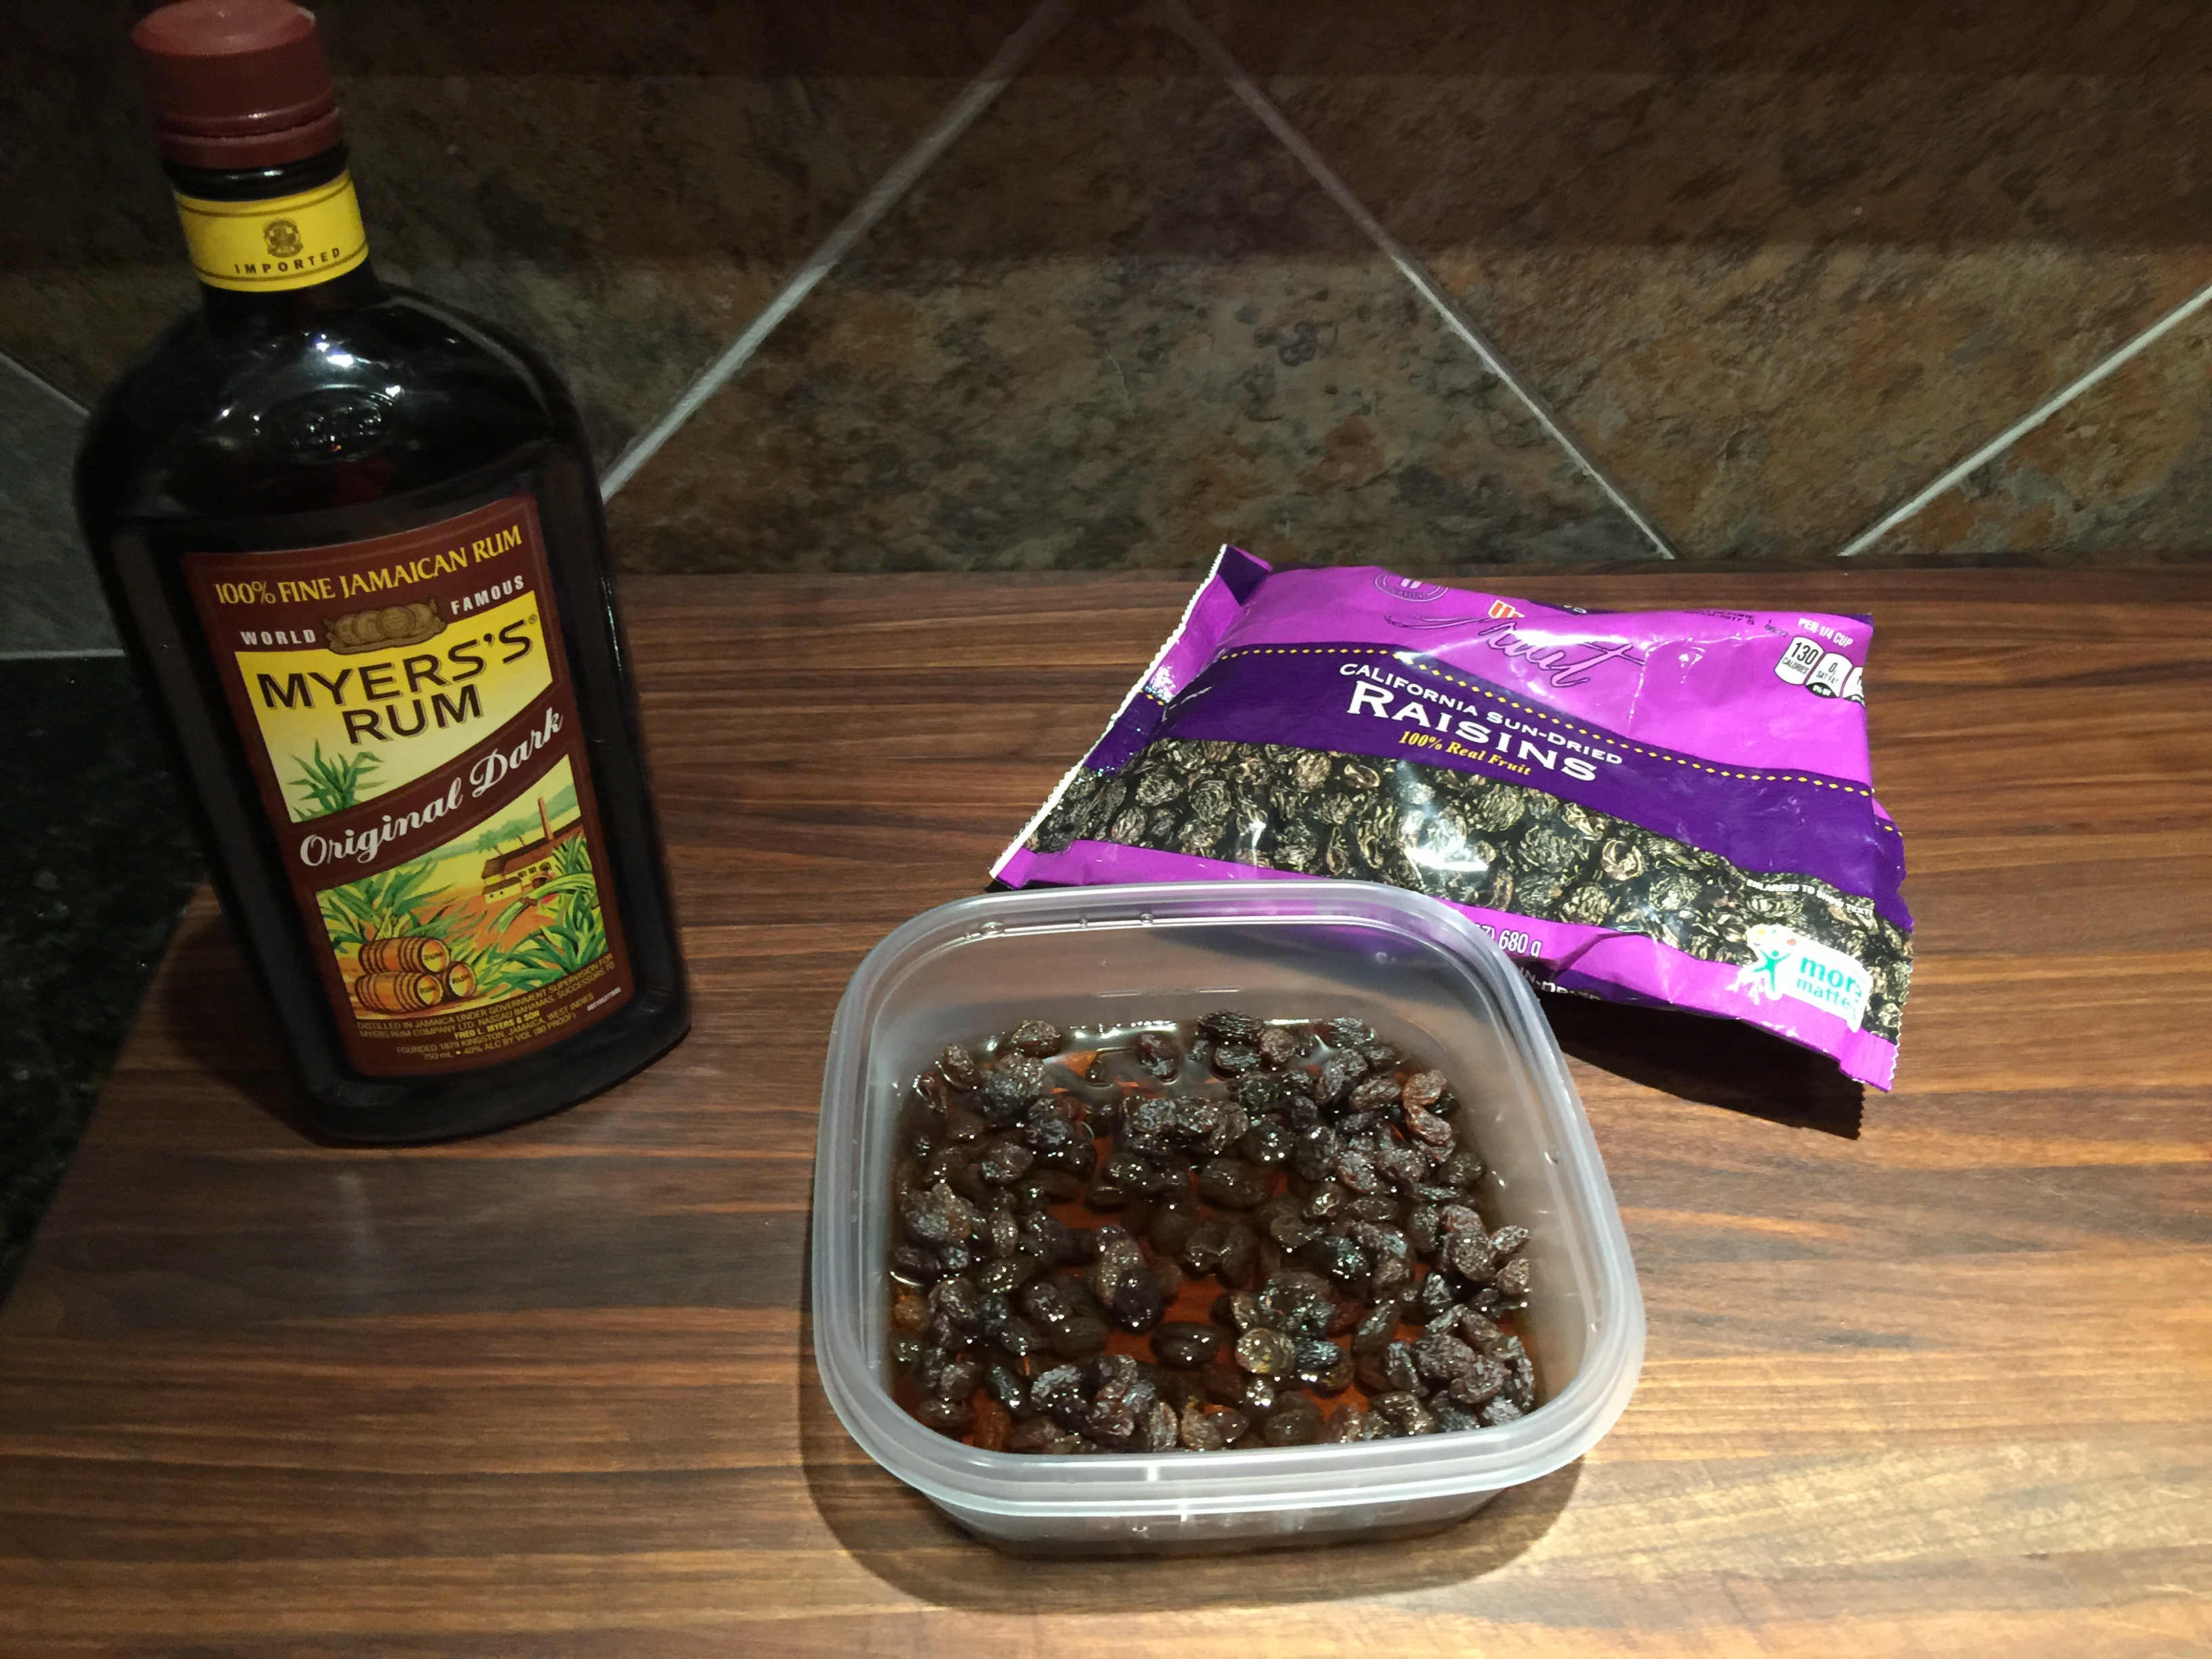 Rum Raisin Ice Cream Recipe Soaking Raisins